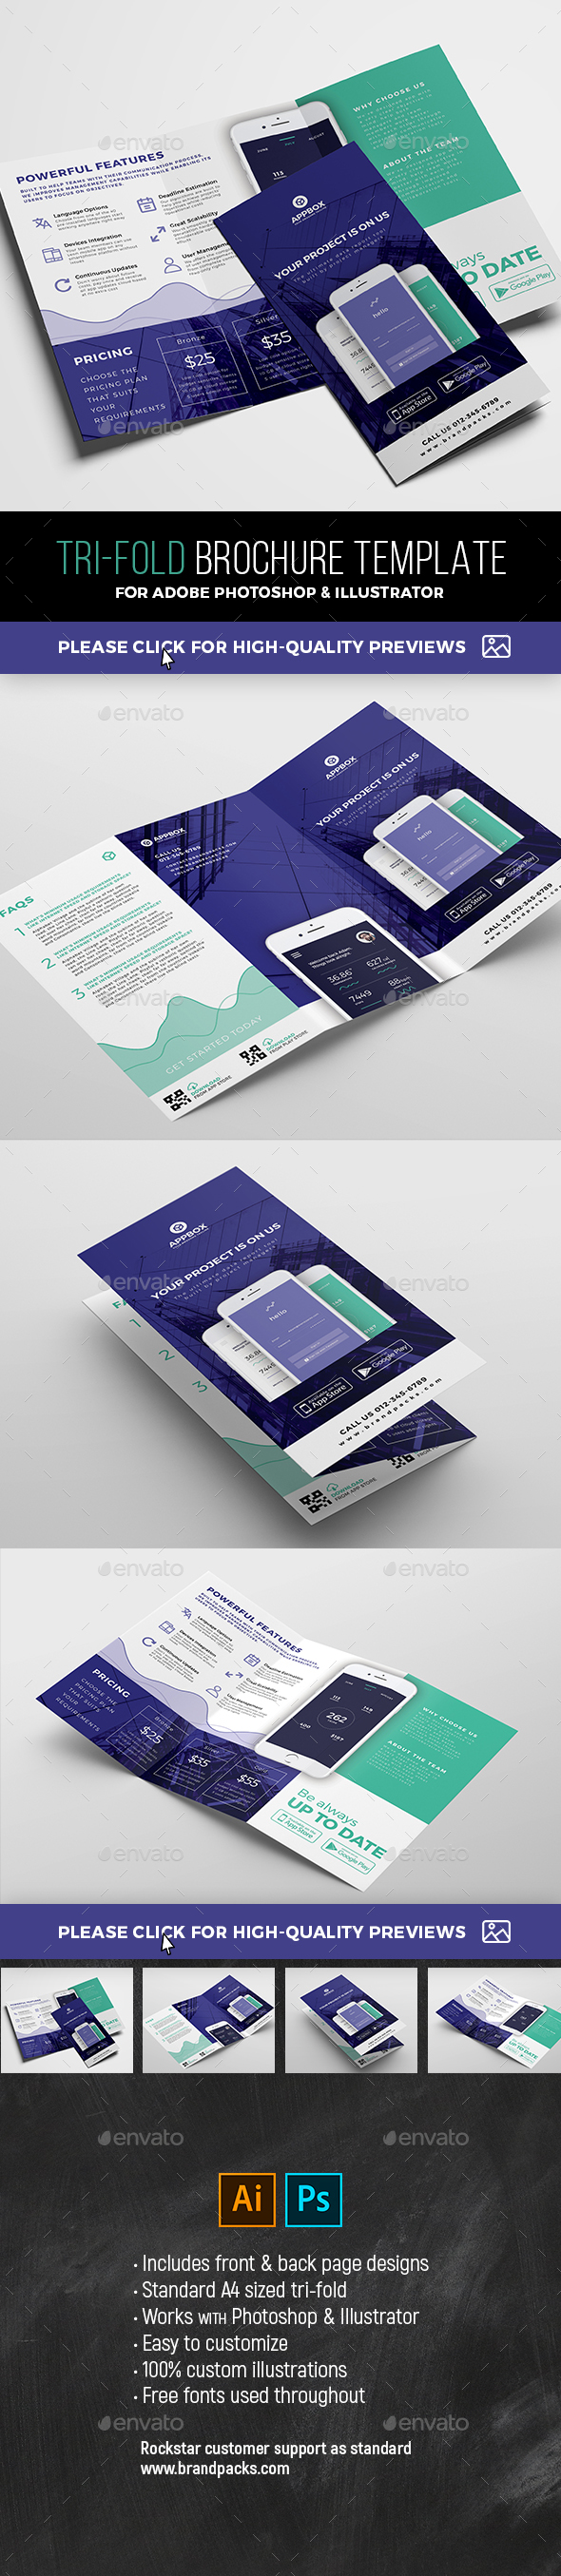 GraphicRiver Mobile App Tri-Fold Brochure 21109299